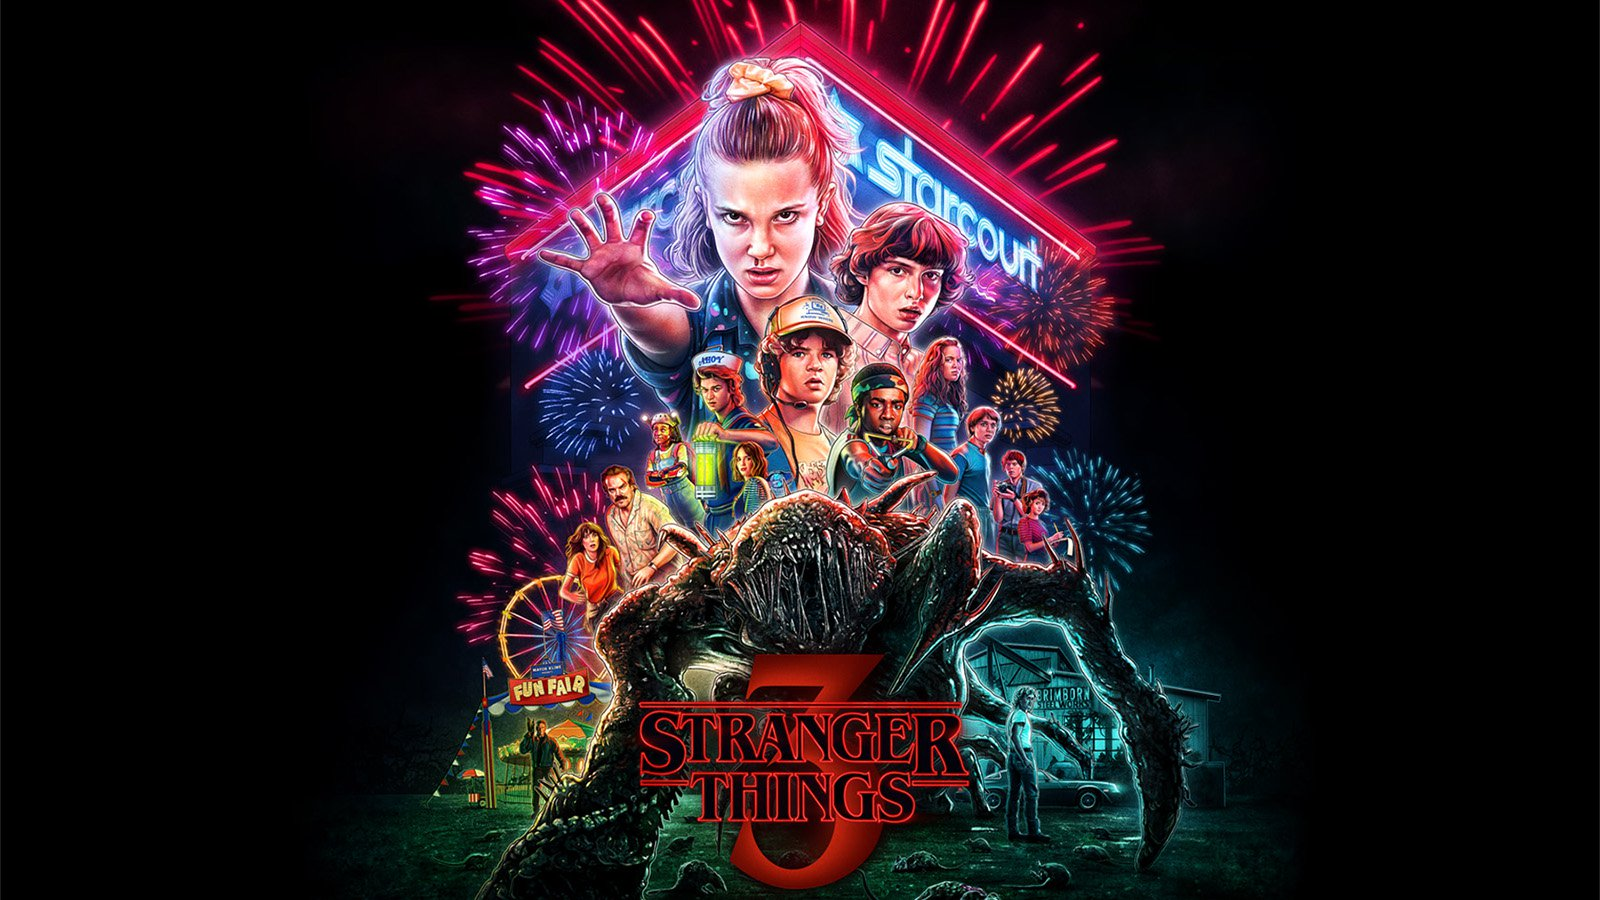 Stranger Things Season 2 Wallpaper Posted By Ryan Anderson